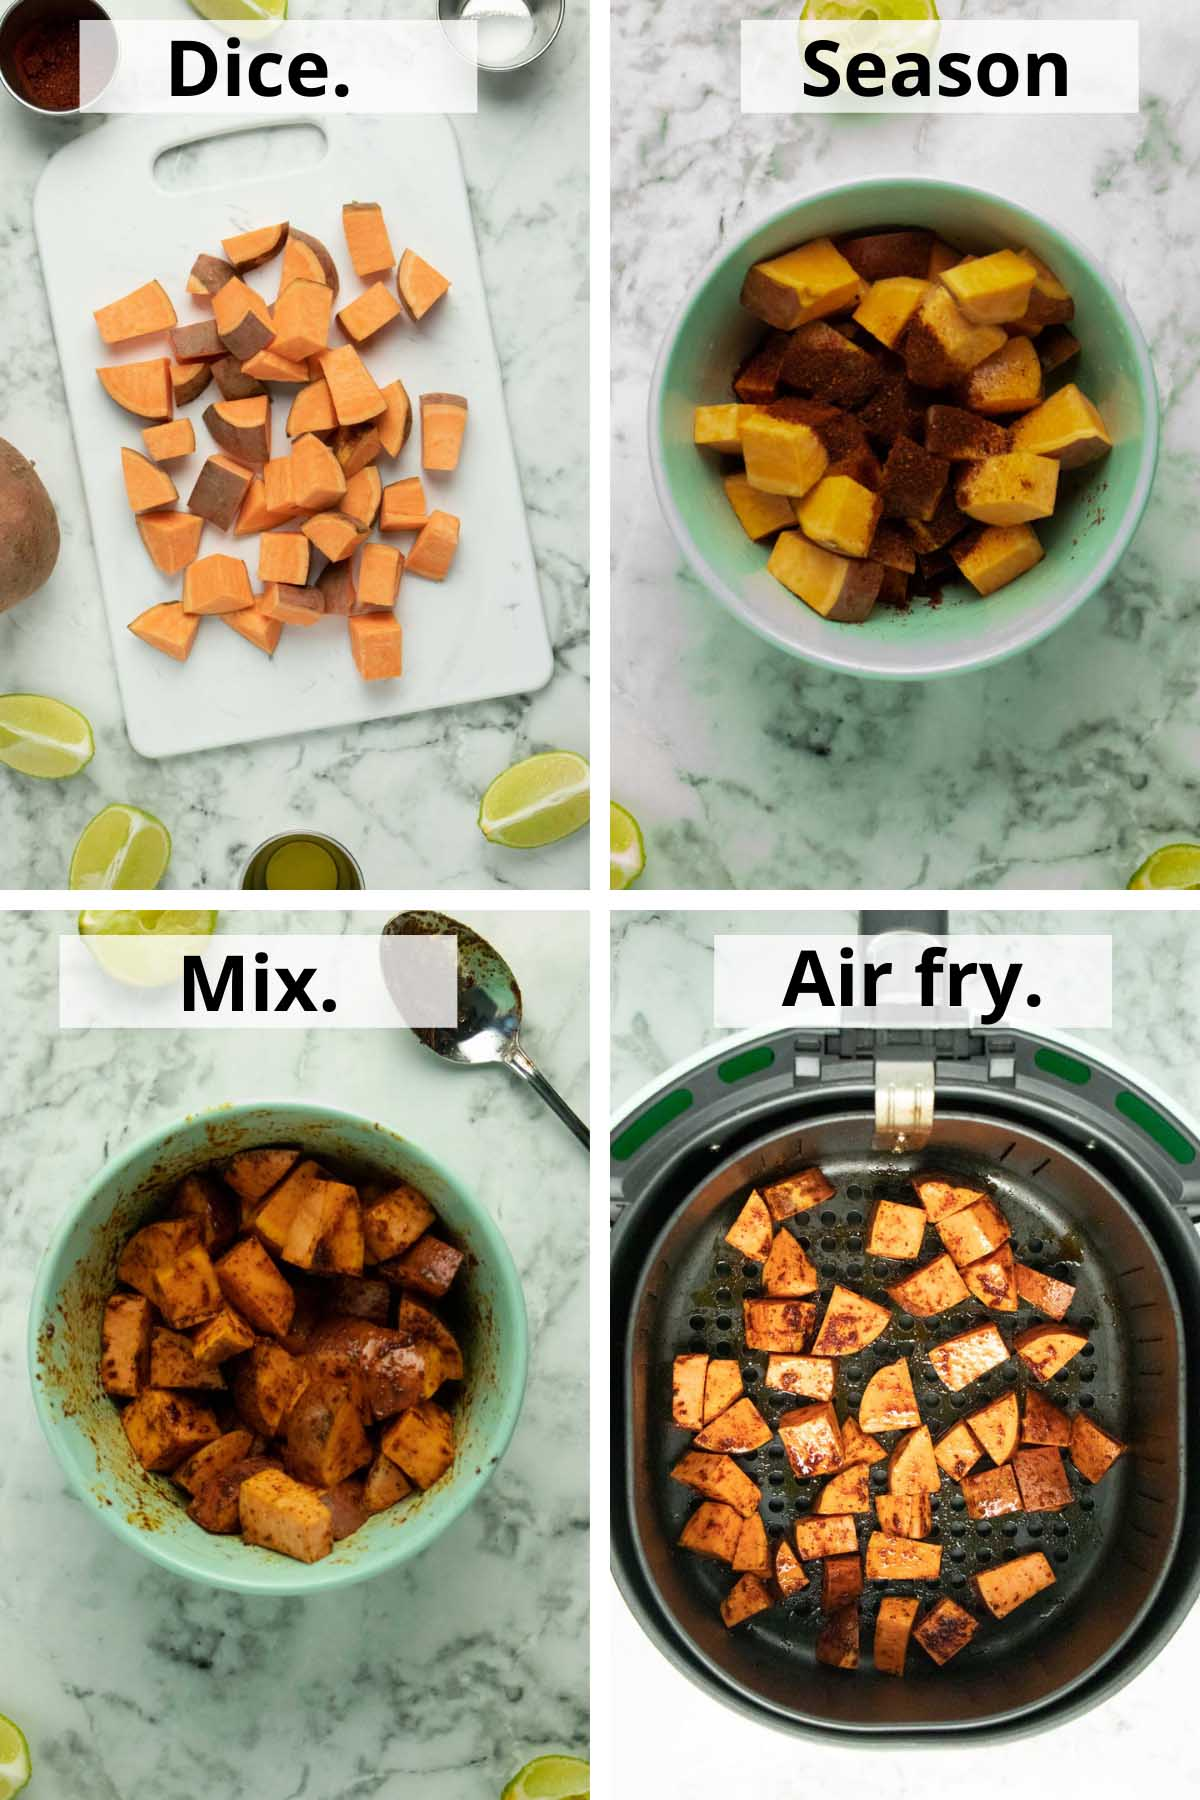 image collage showing the diced sweet potato, mixing with seasoning, and ready to cook in the basket